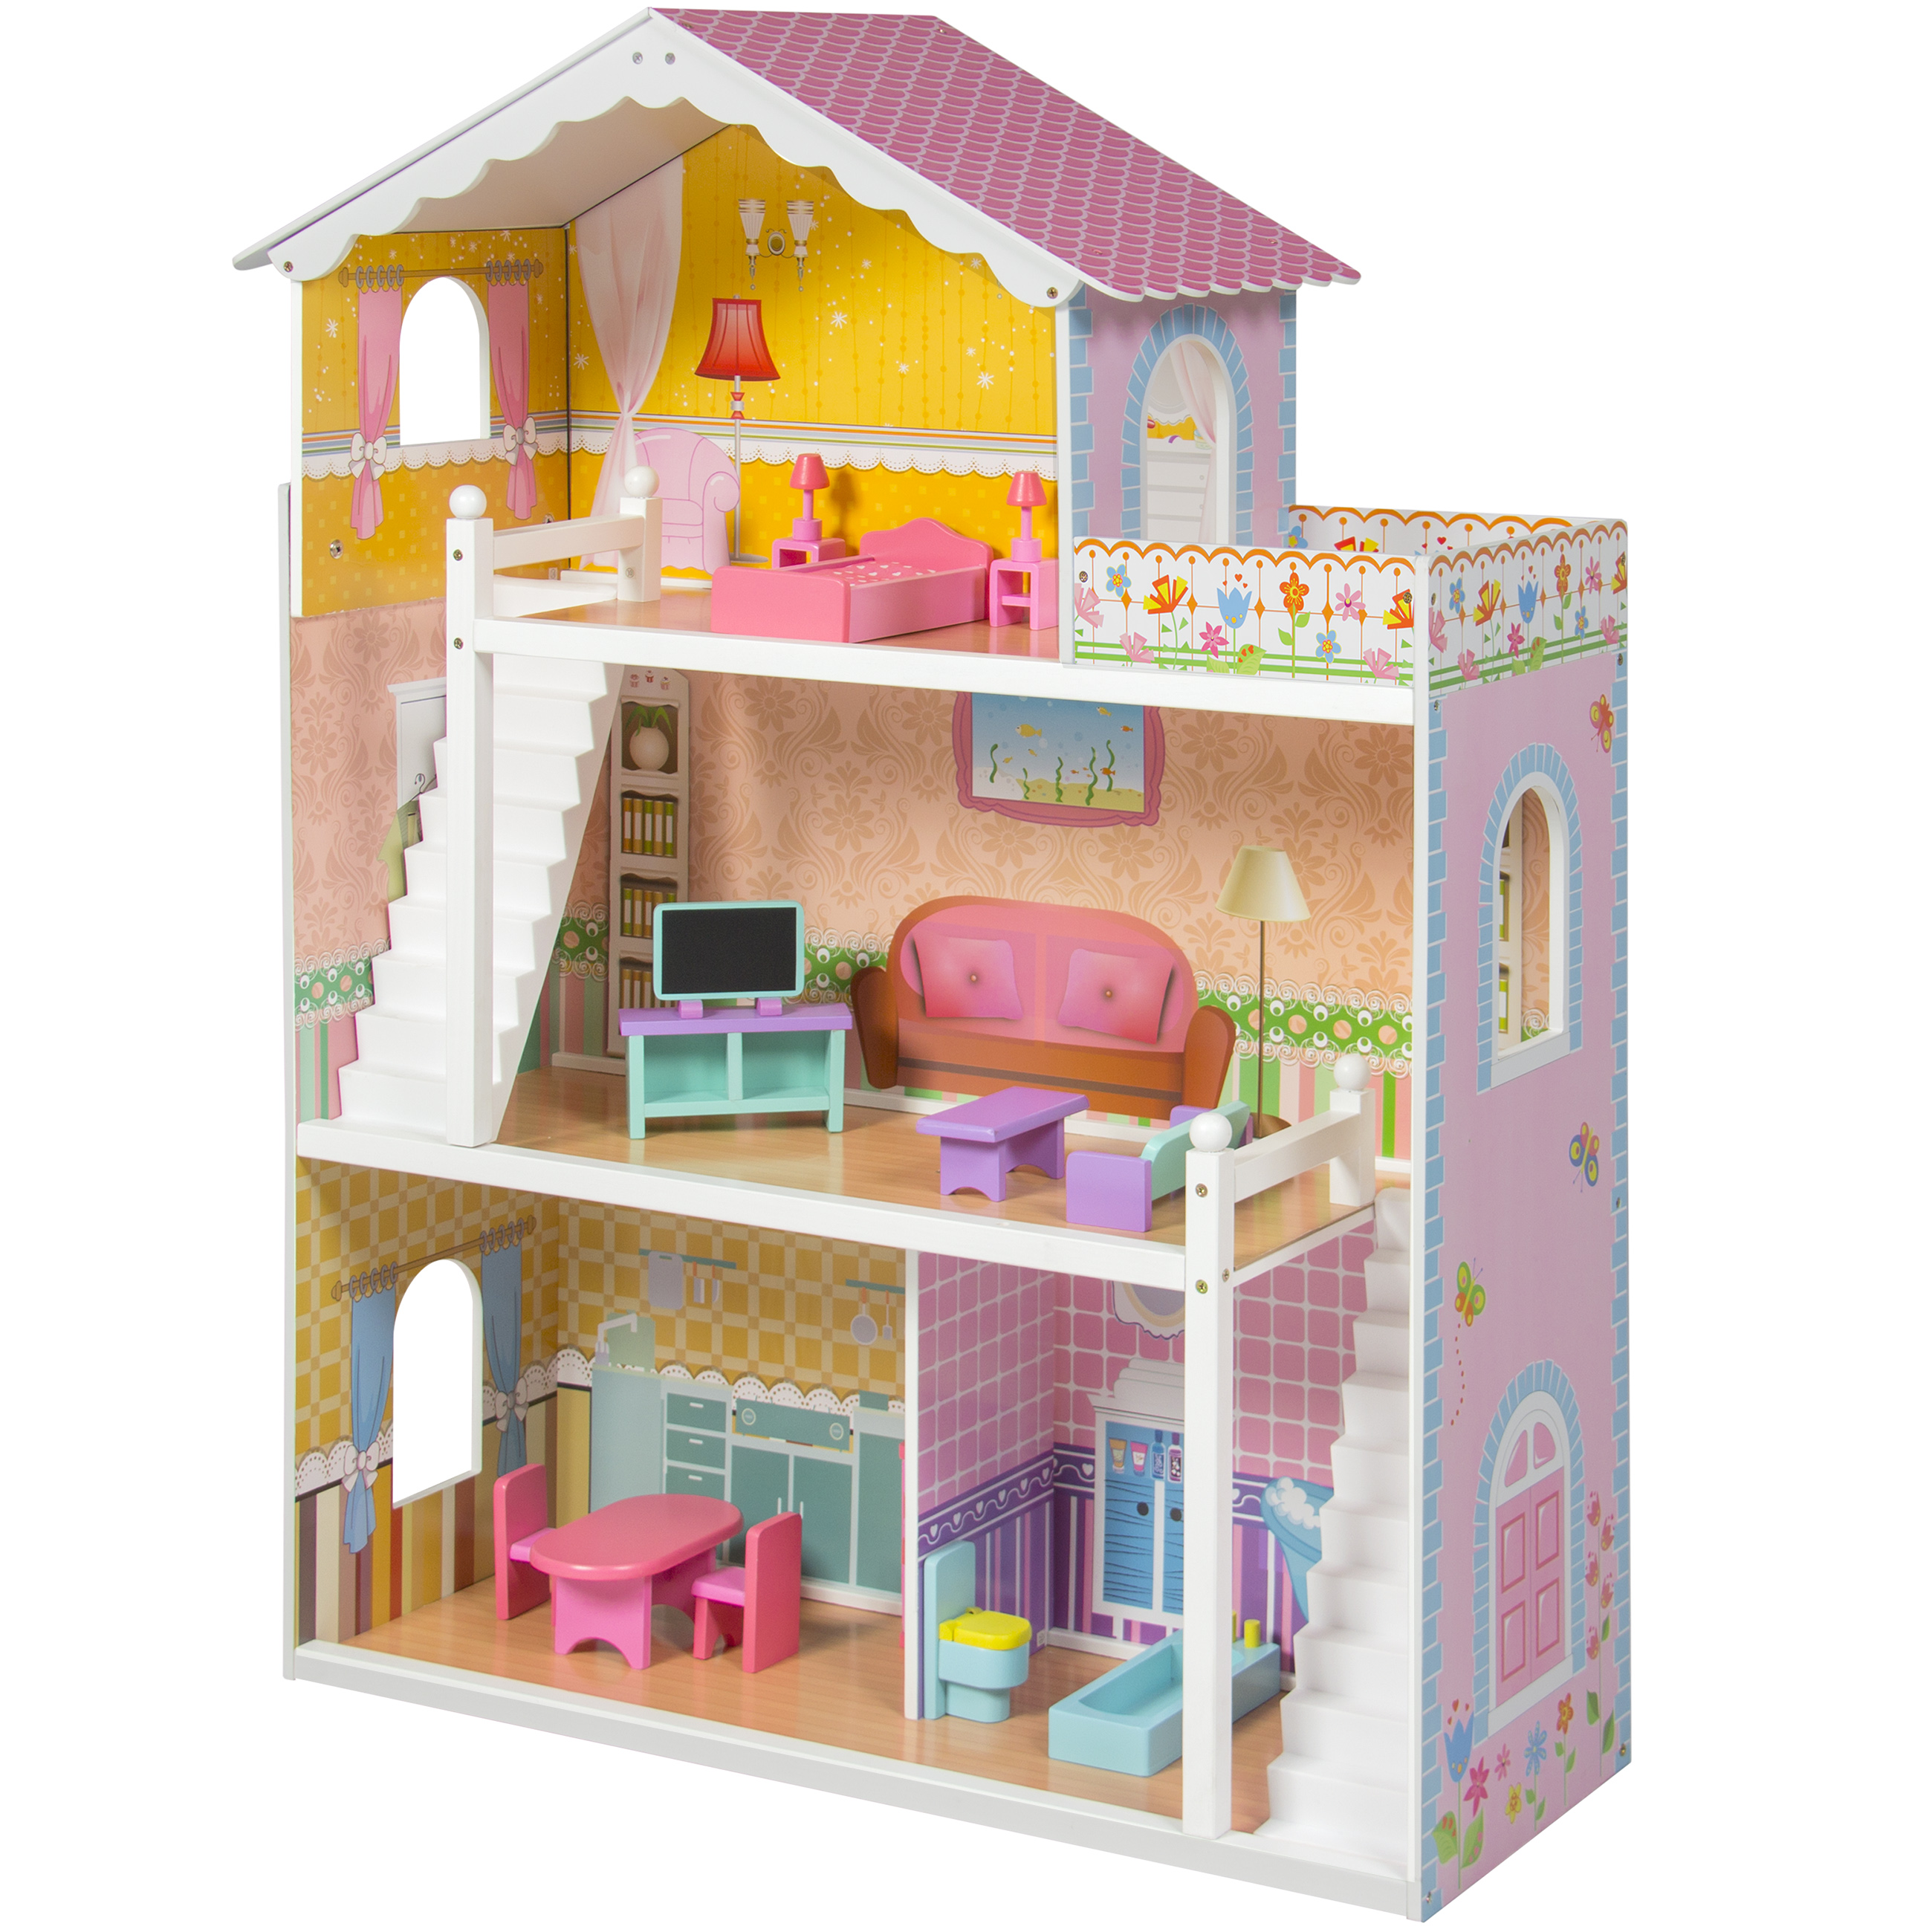 large childrens wooden dollhouse fits barbie doll house pink with furniture walmartcom cheap wooden dollhouse furniture